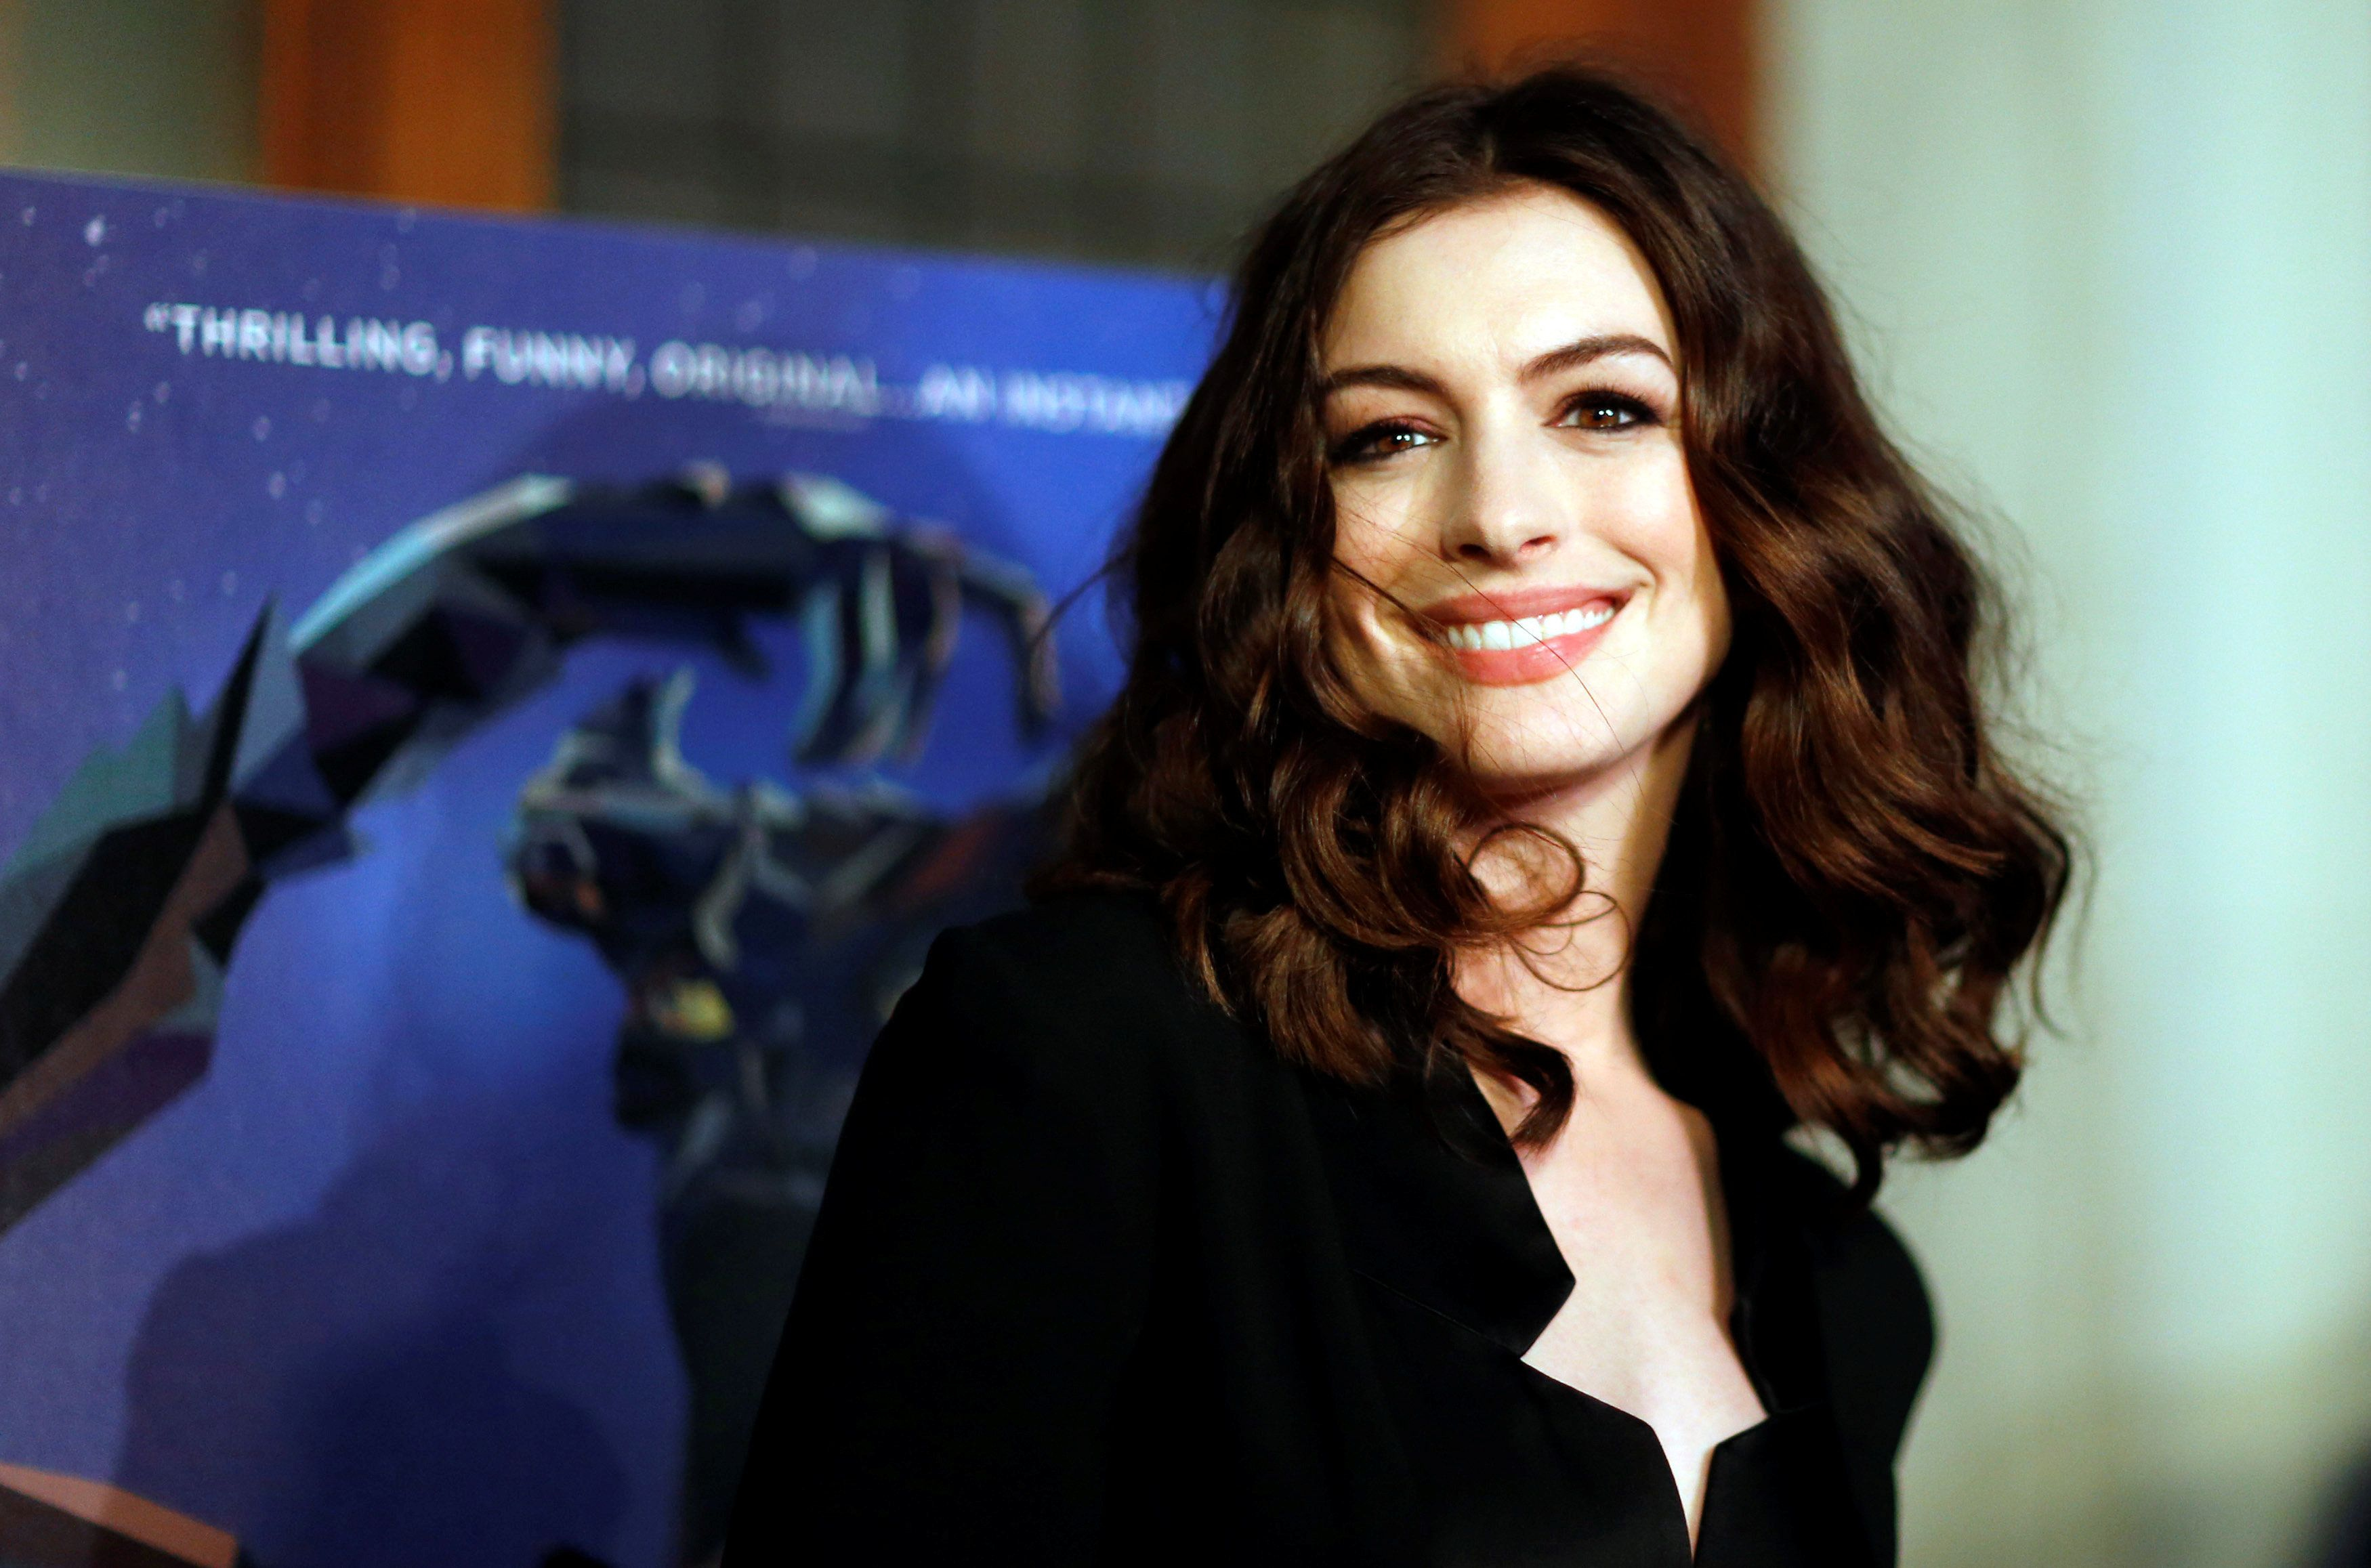 Anne Hathaway poses at the premiere of the film